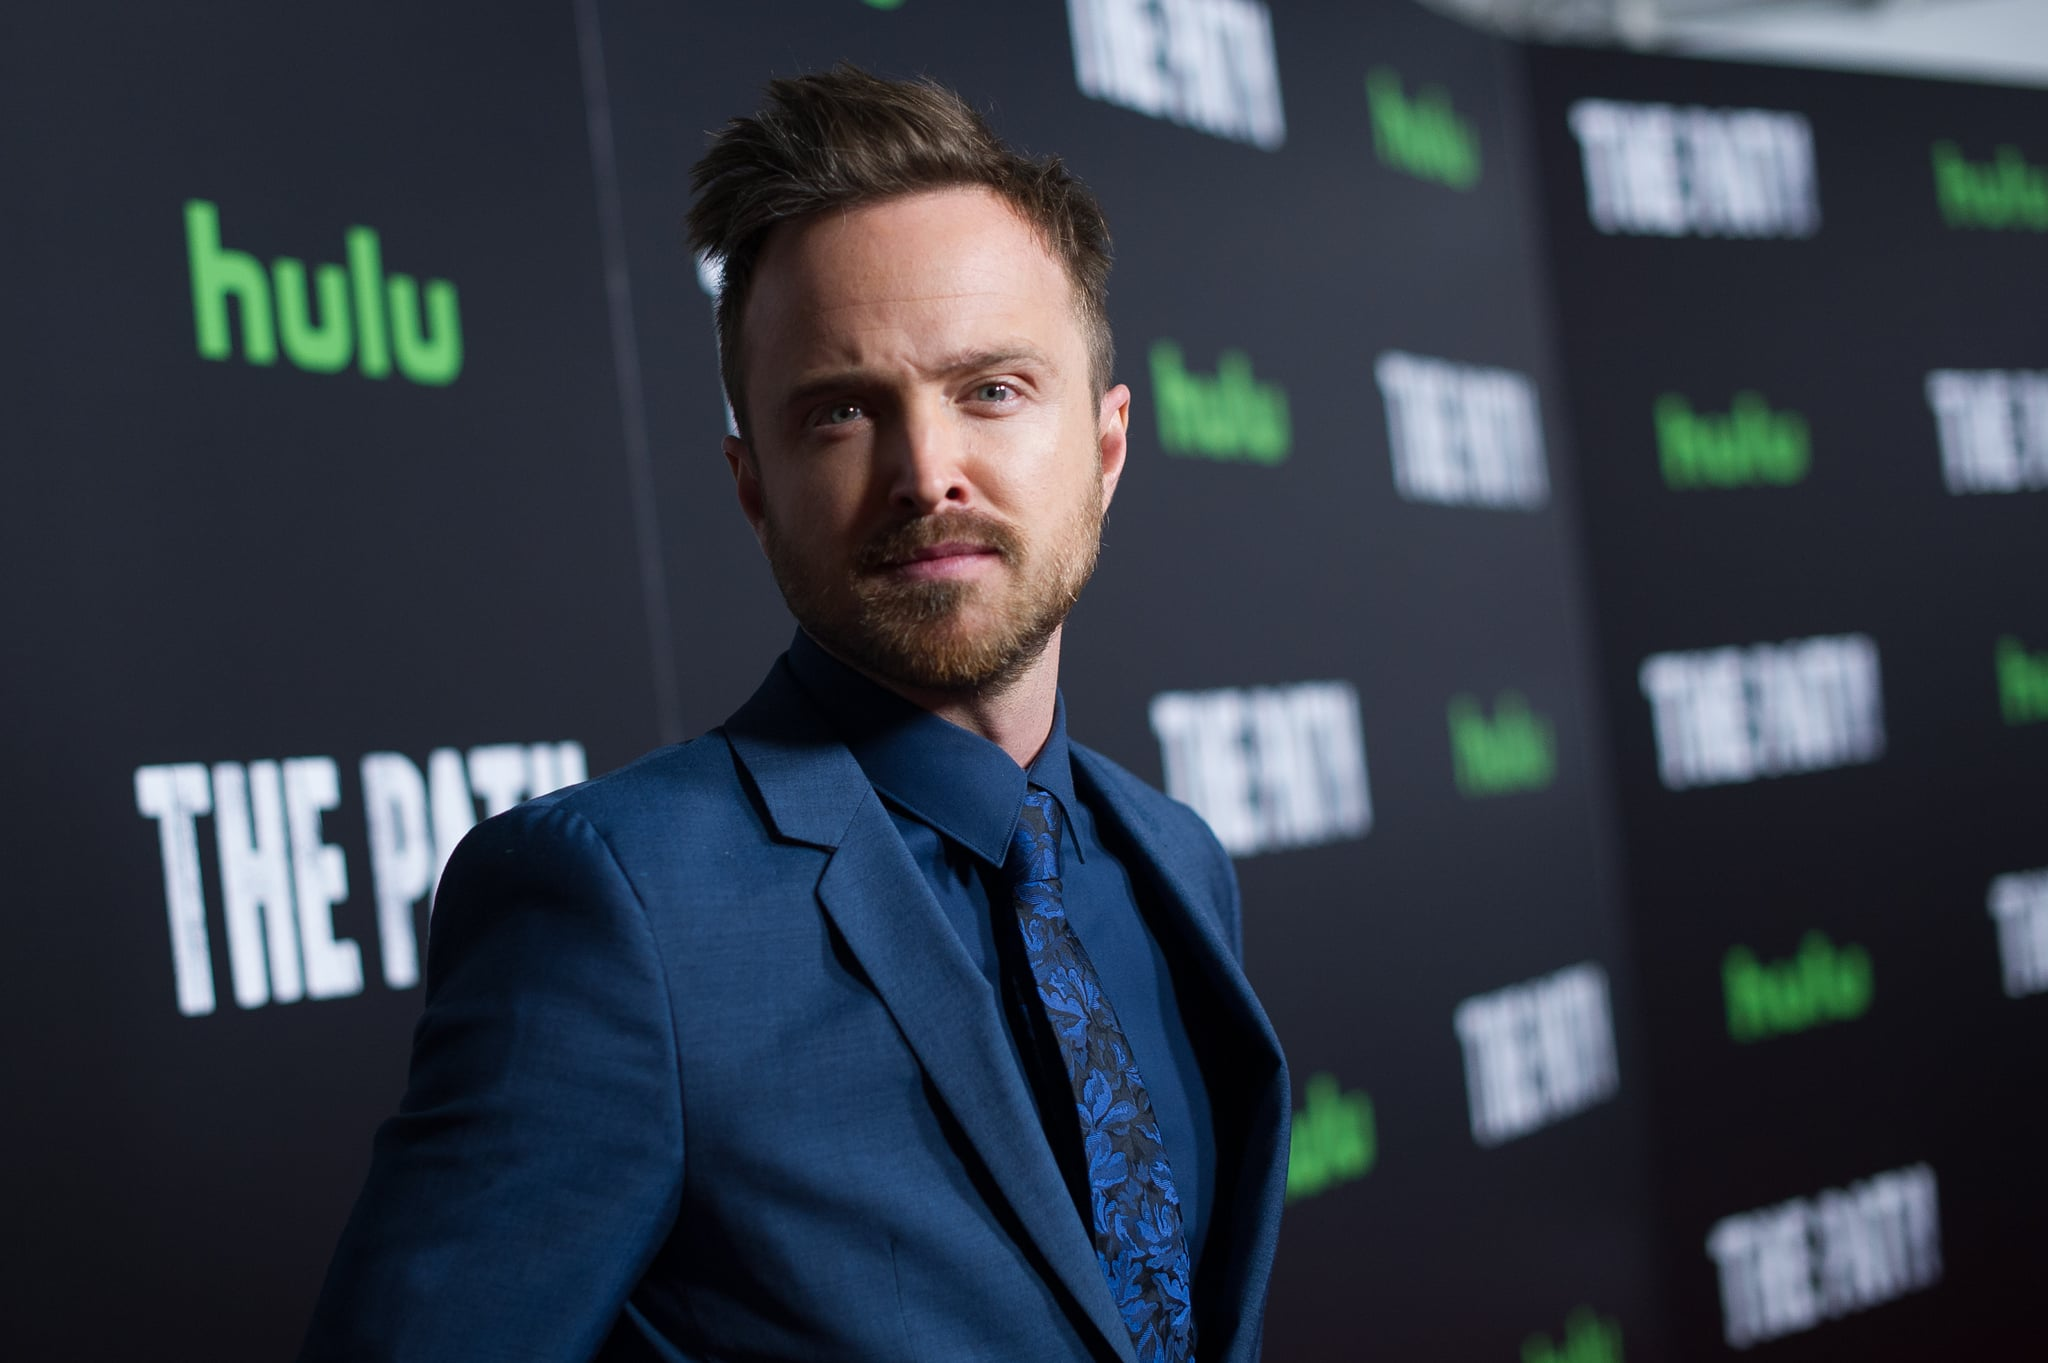 LOS ANGELES, CA - JANUARY 19:  Actor Aaron Paul attends the premiere of Hulu's 'The Path' Season 2 at Sundance Sunset Cinema on January 19, 2017 in Los Angeles, California.  (Photo by Emma McIntyre/Getty Images)